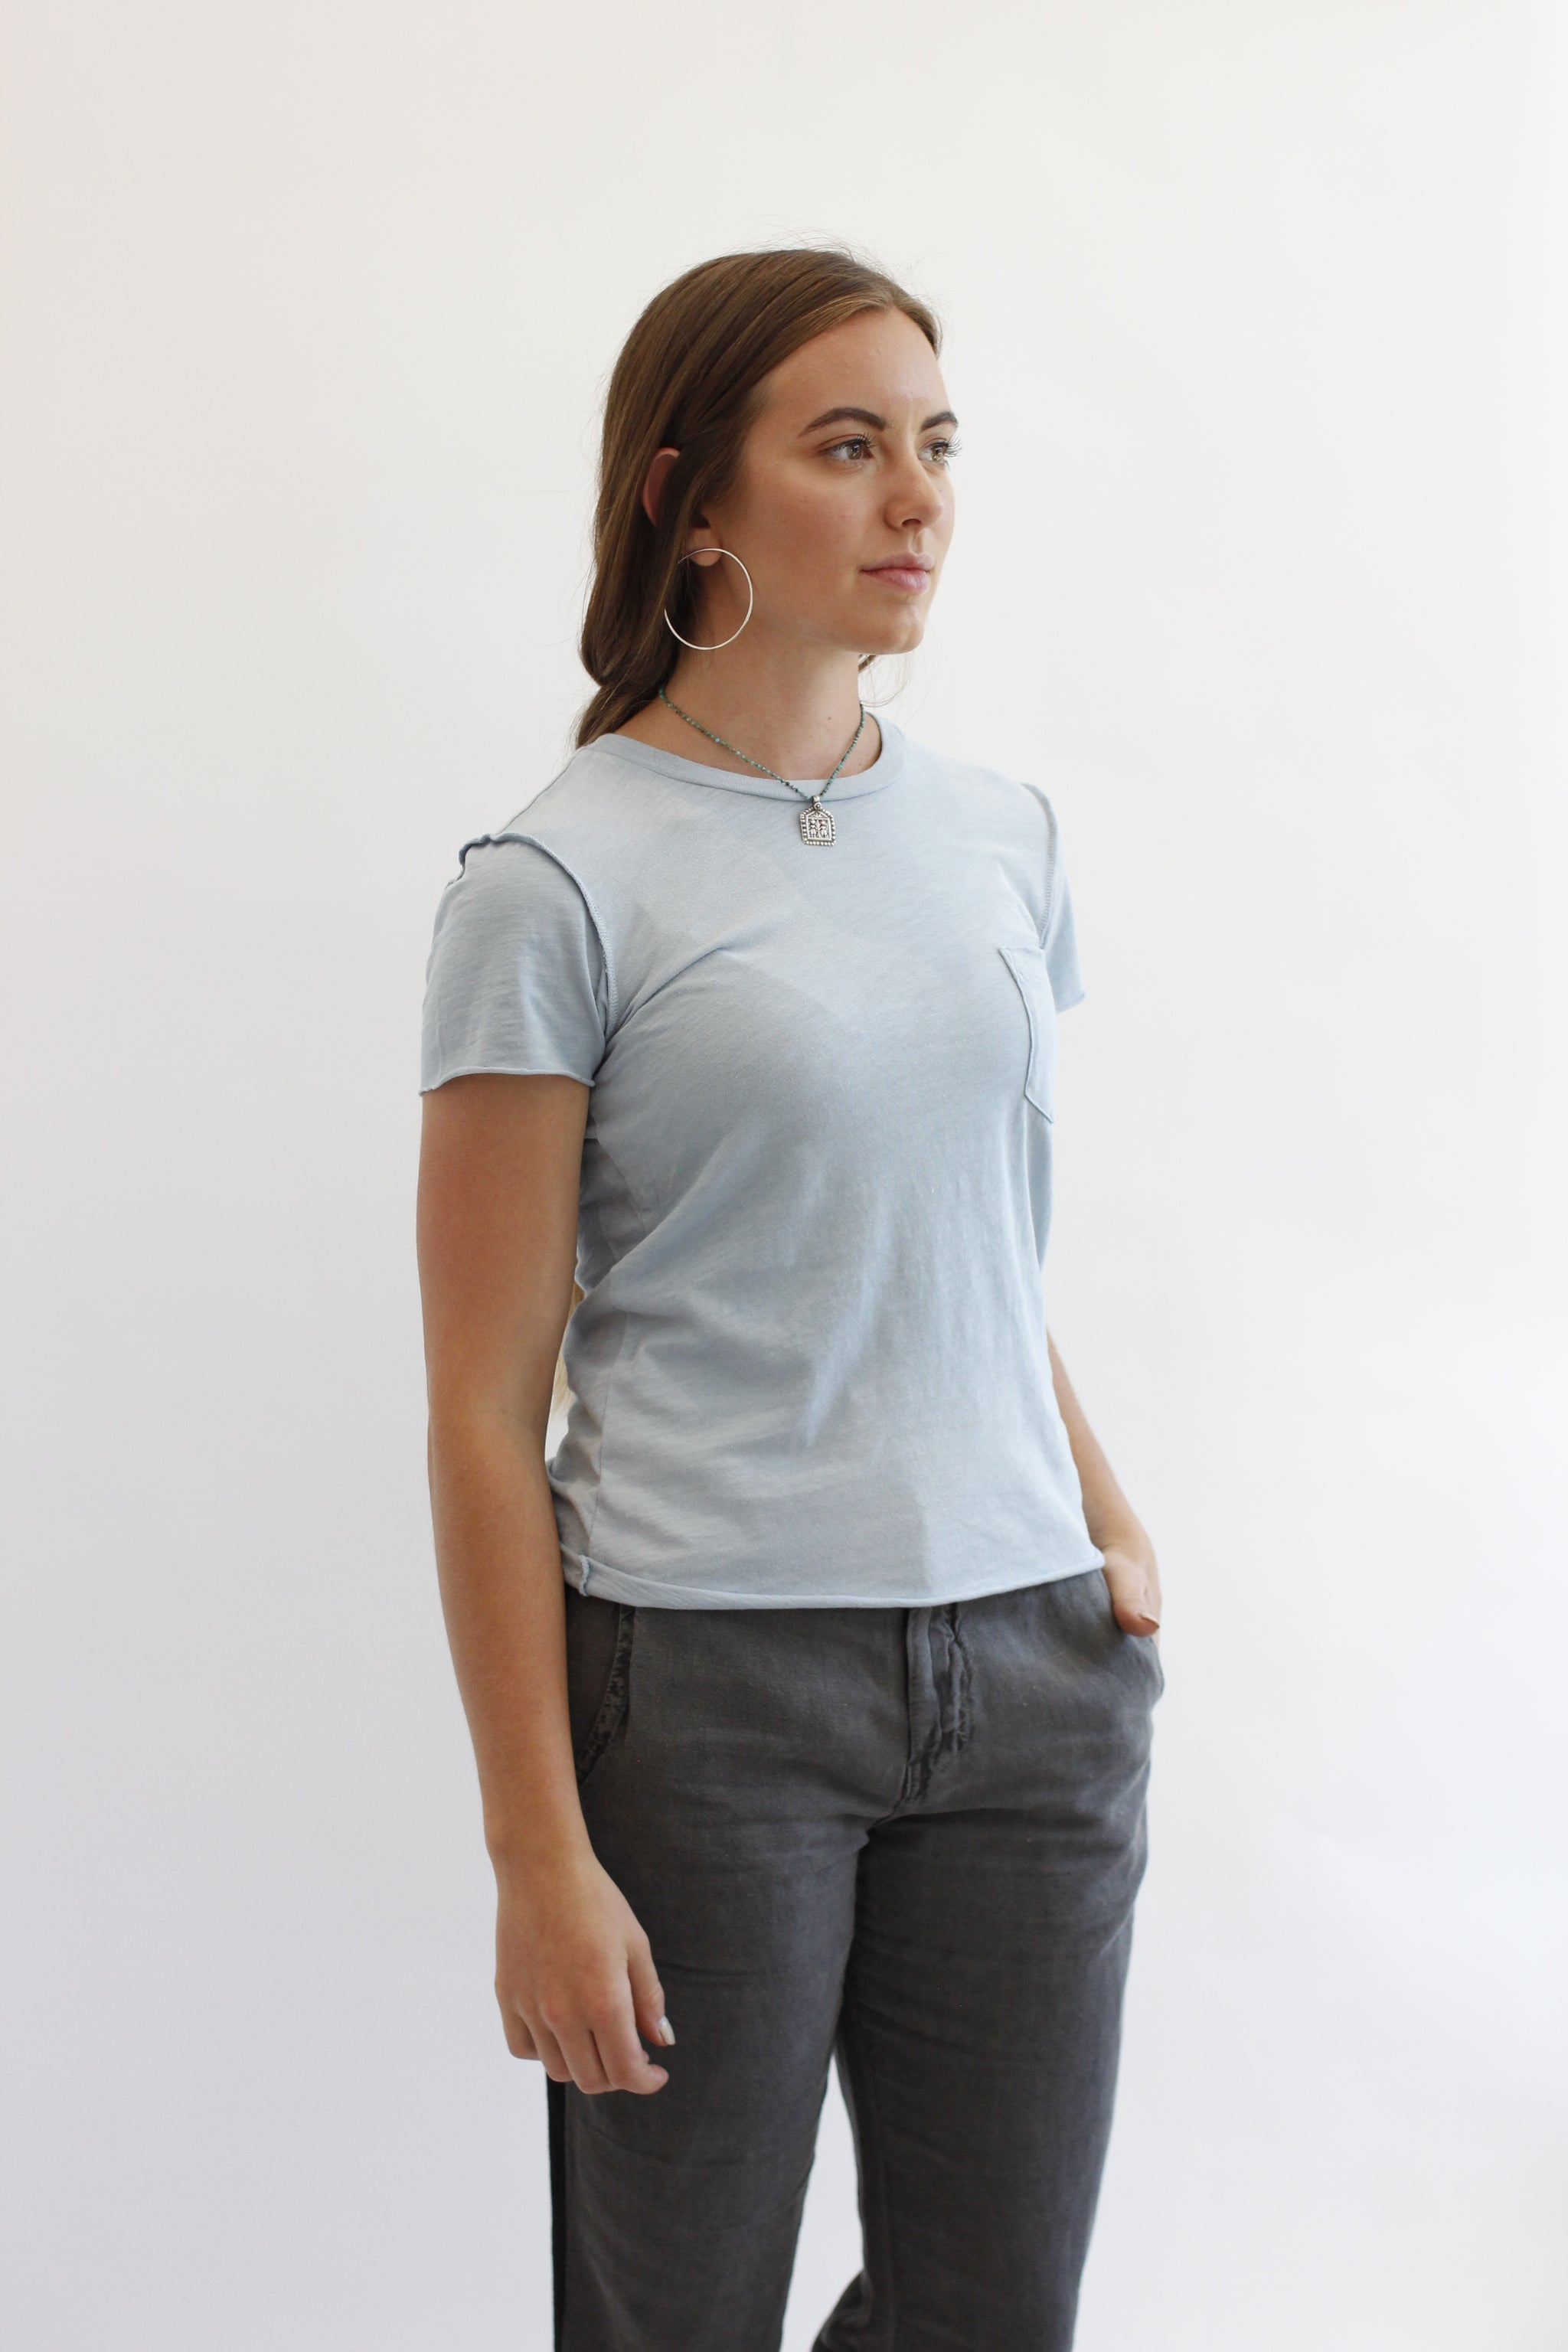 NSF Lexie Pocket Tee - Habits Jackson Hole